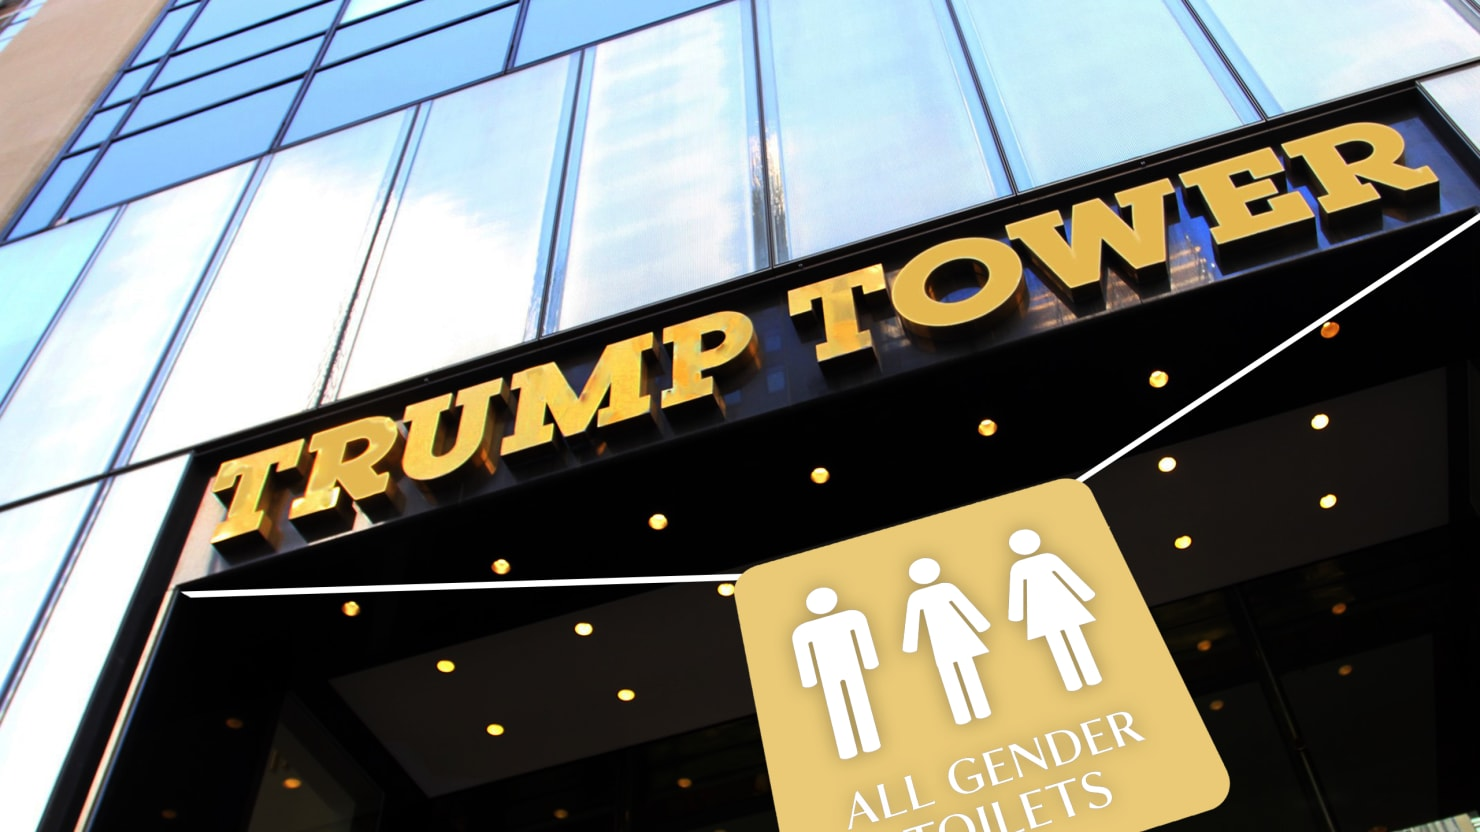 The One Place that Still Supports Trans Bathroom Rights: Trump Tower